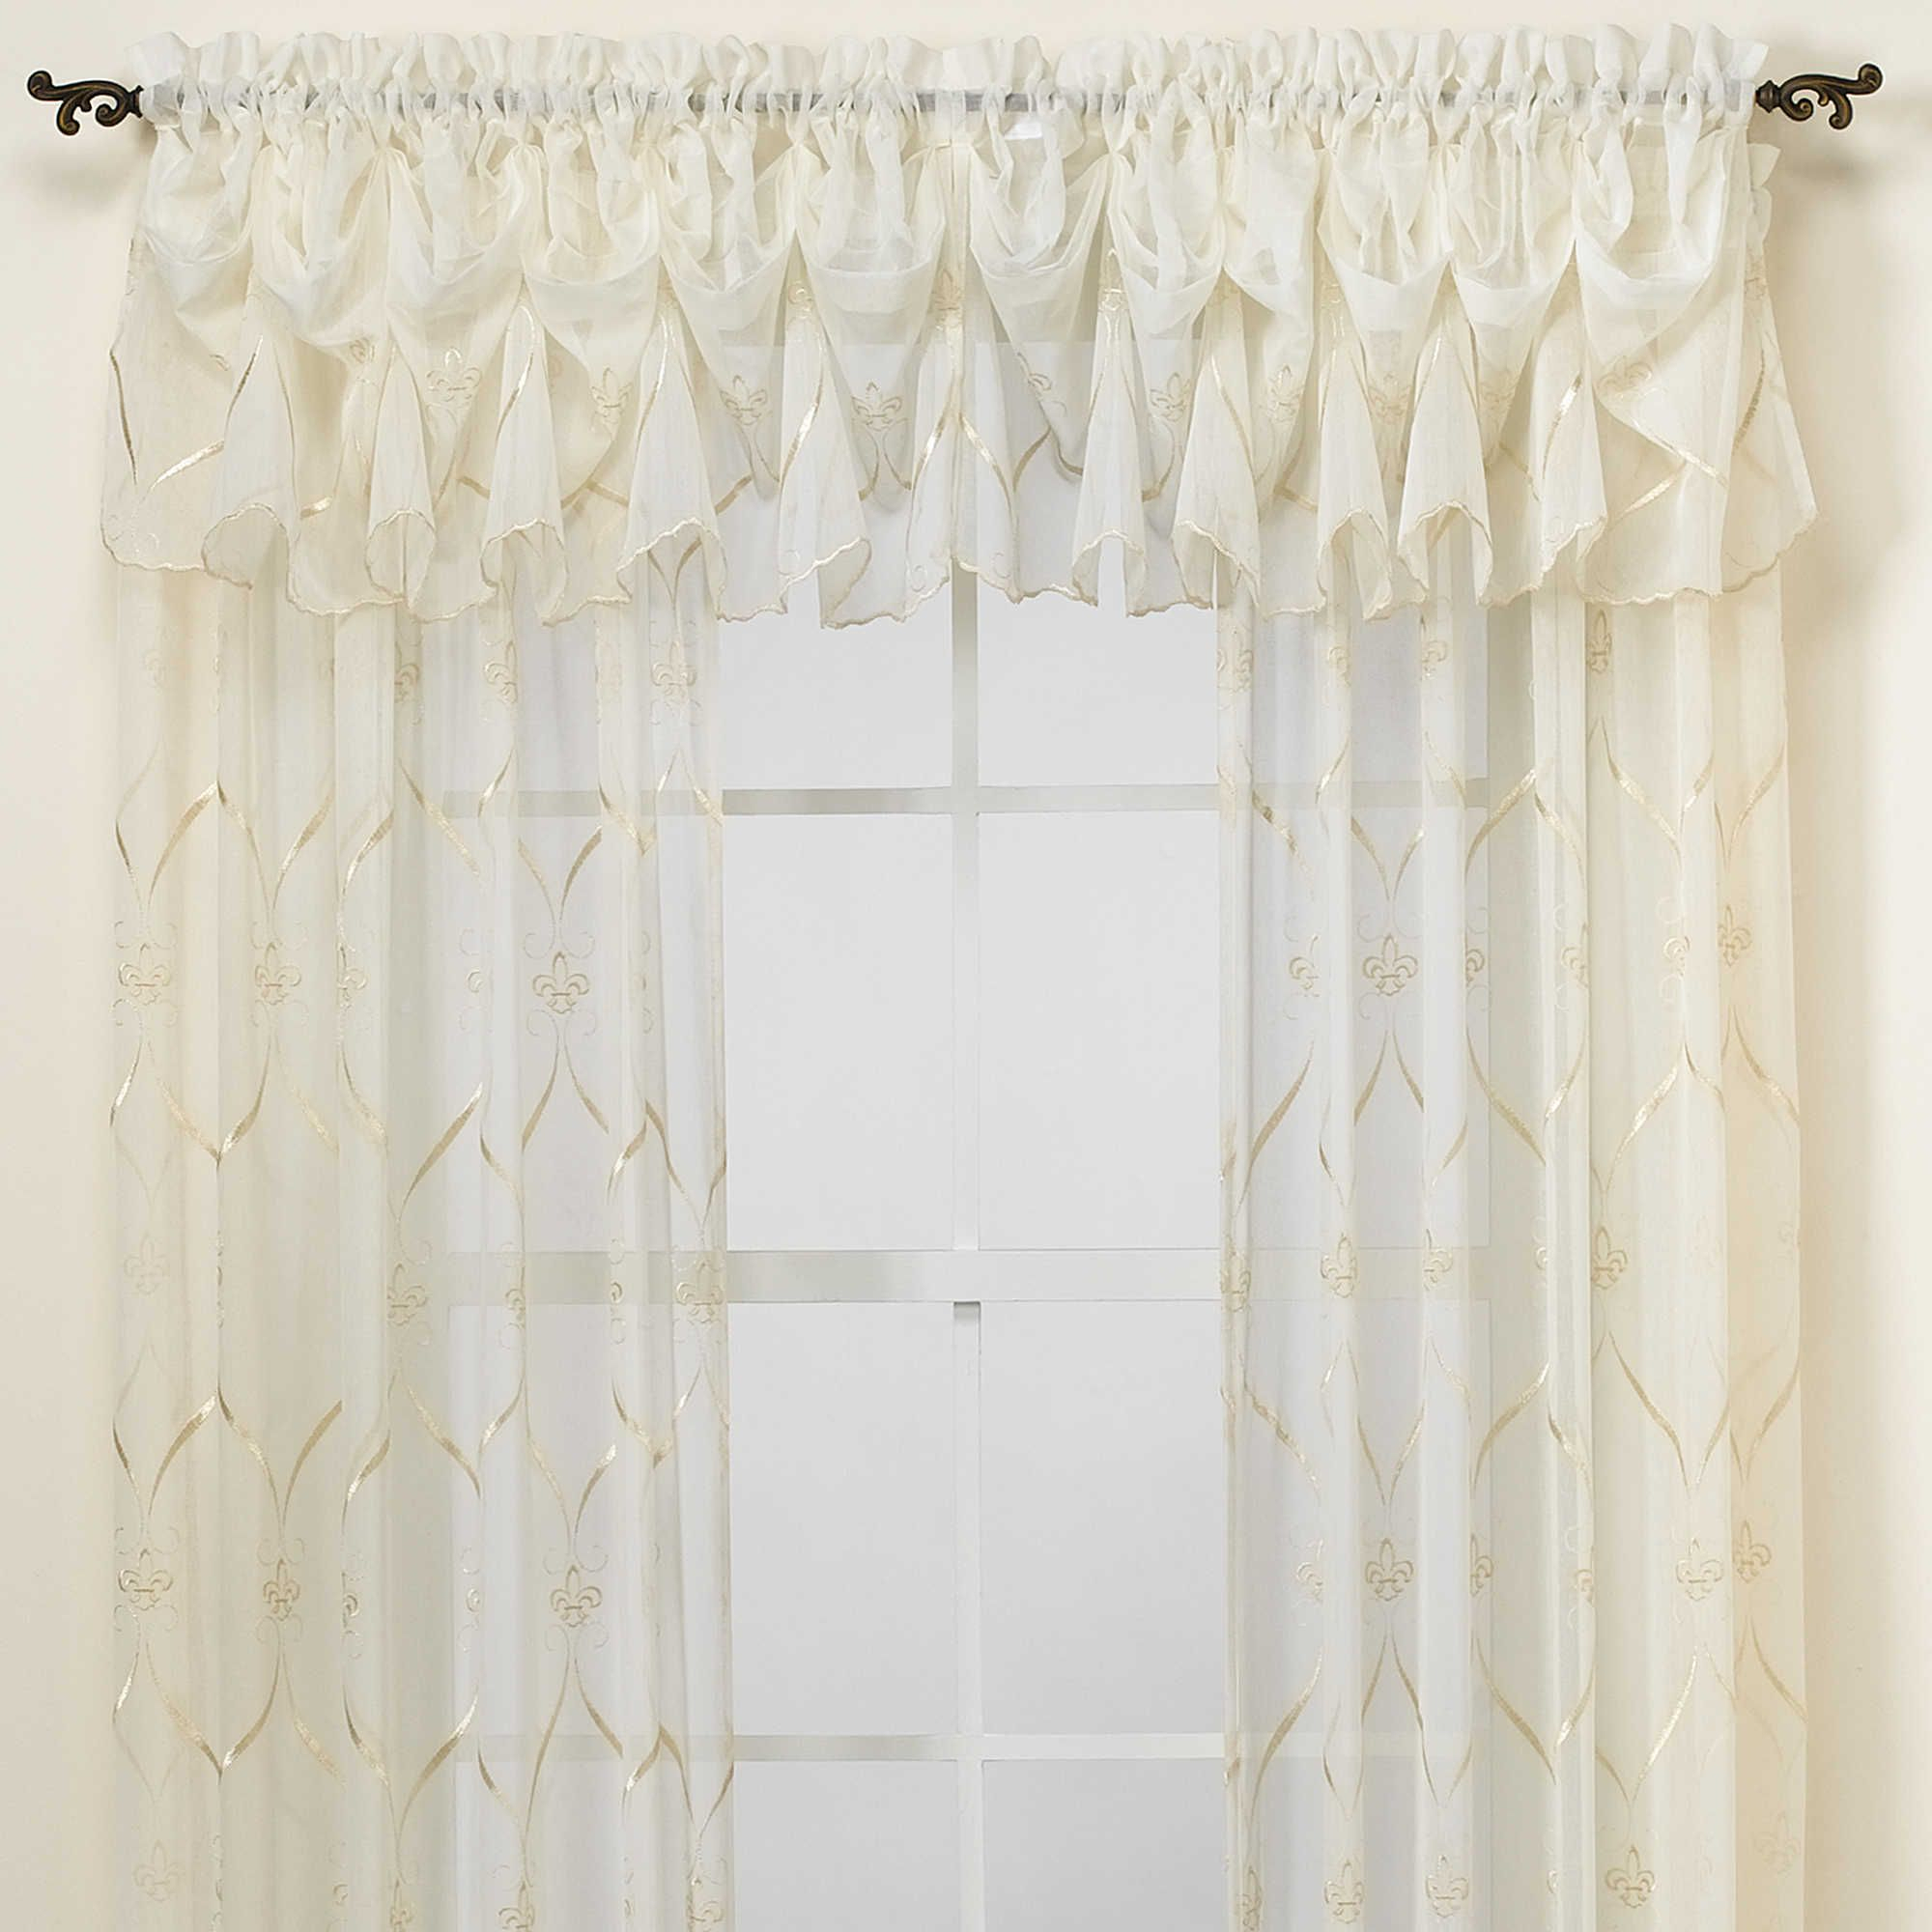 Croscill® Cavalier Sheer Window Panel   Entry/dining Room Throughout Ivory Knit Lace Bird Motif Window Curtain (View 3 of 20)